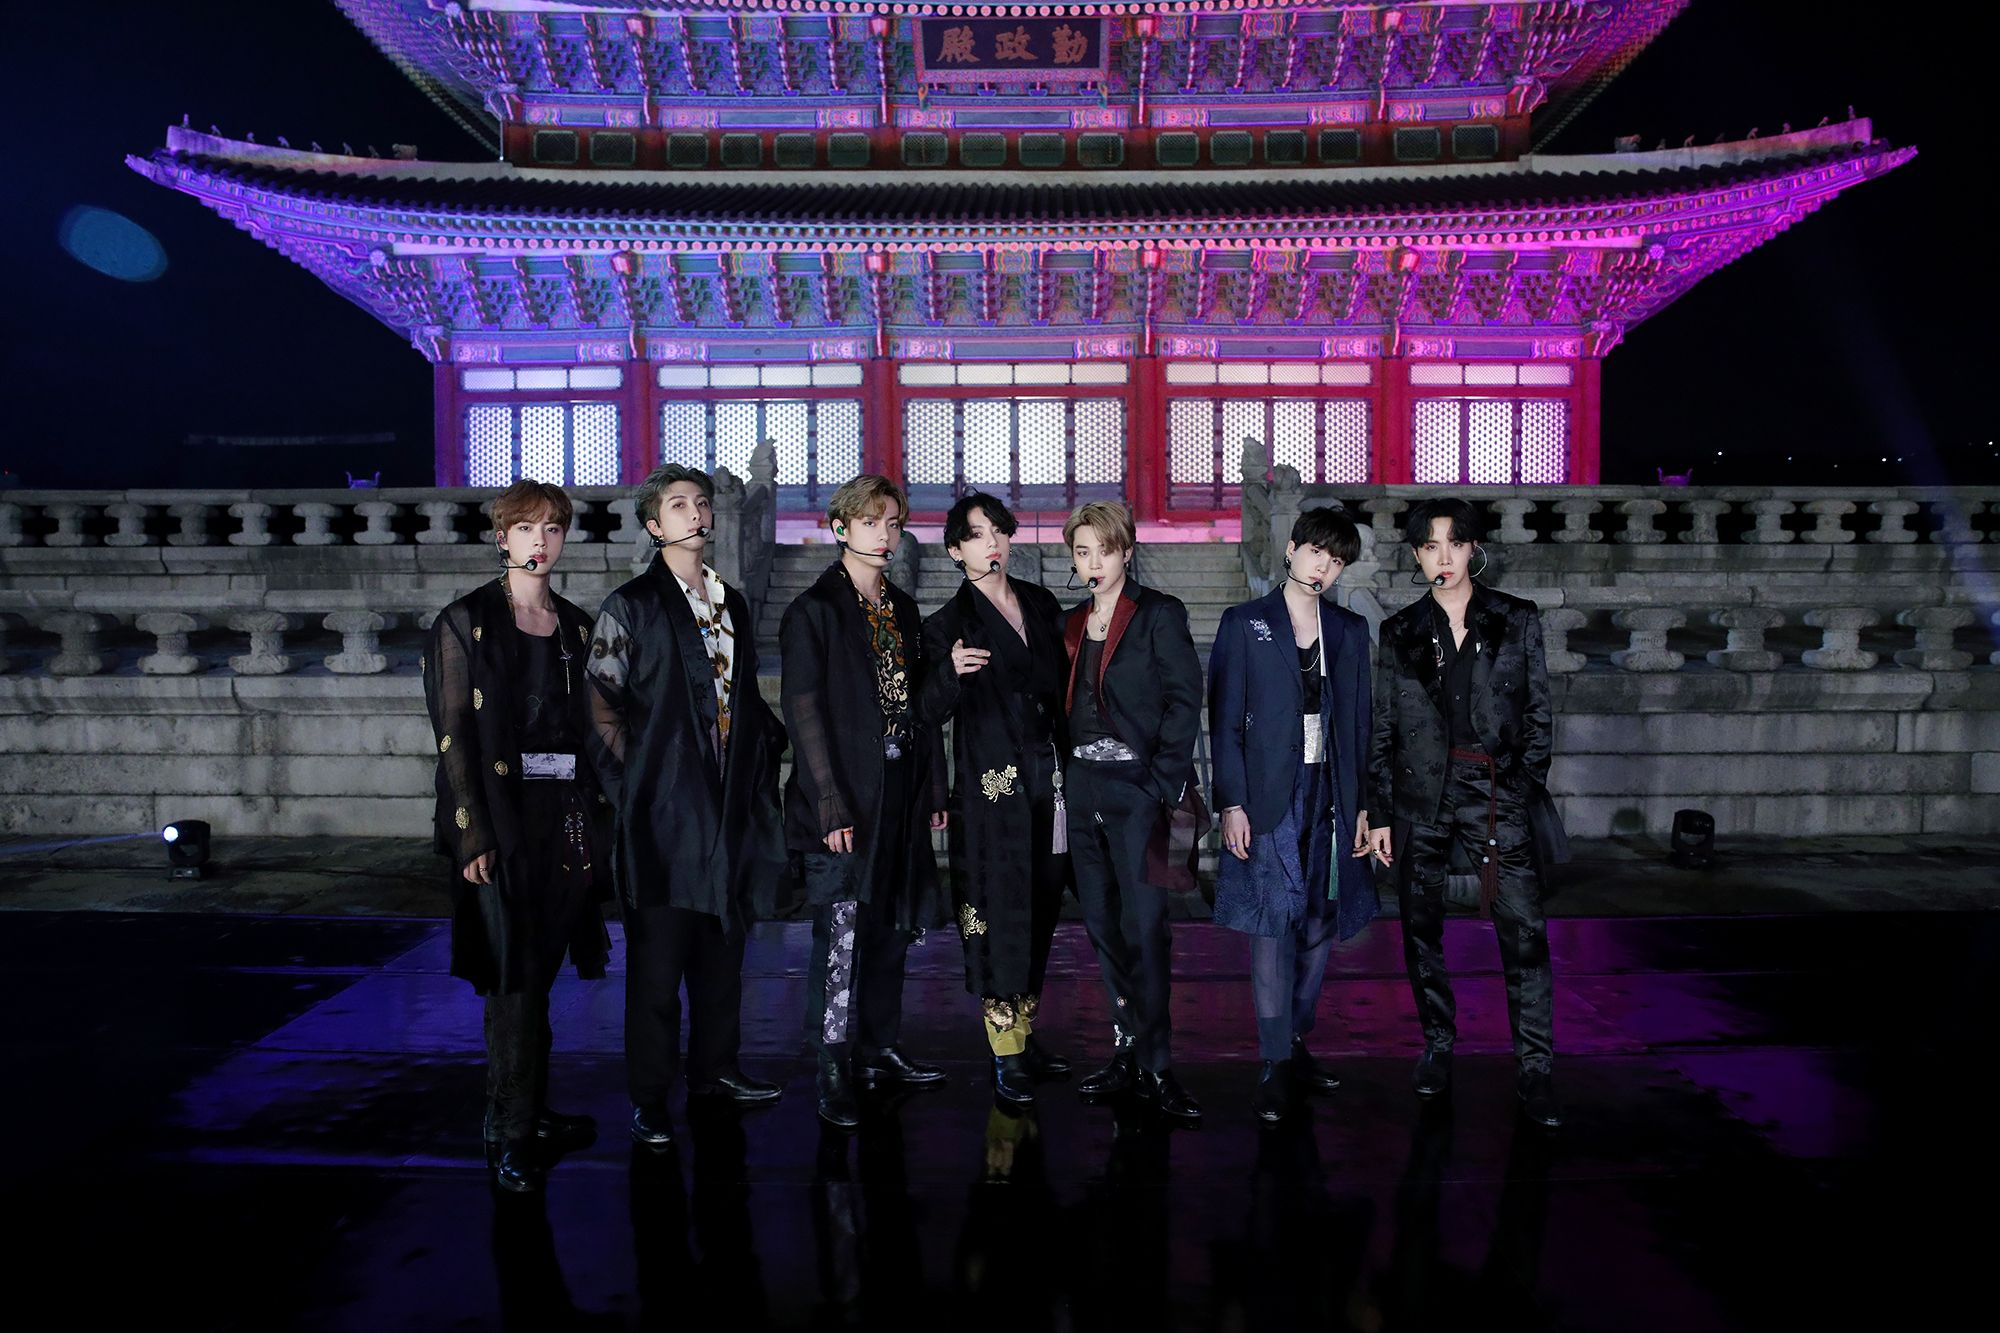 Kpopherald On Twitter Bts Twt Dancing To Idol At The Backdrop Of Korea S Royal Gyeongbok Palace For Fallontonight Was Just Bts Pictures Tonight Show Bts